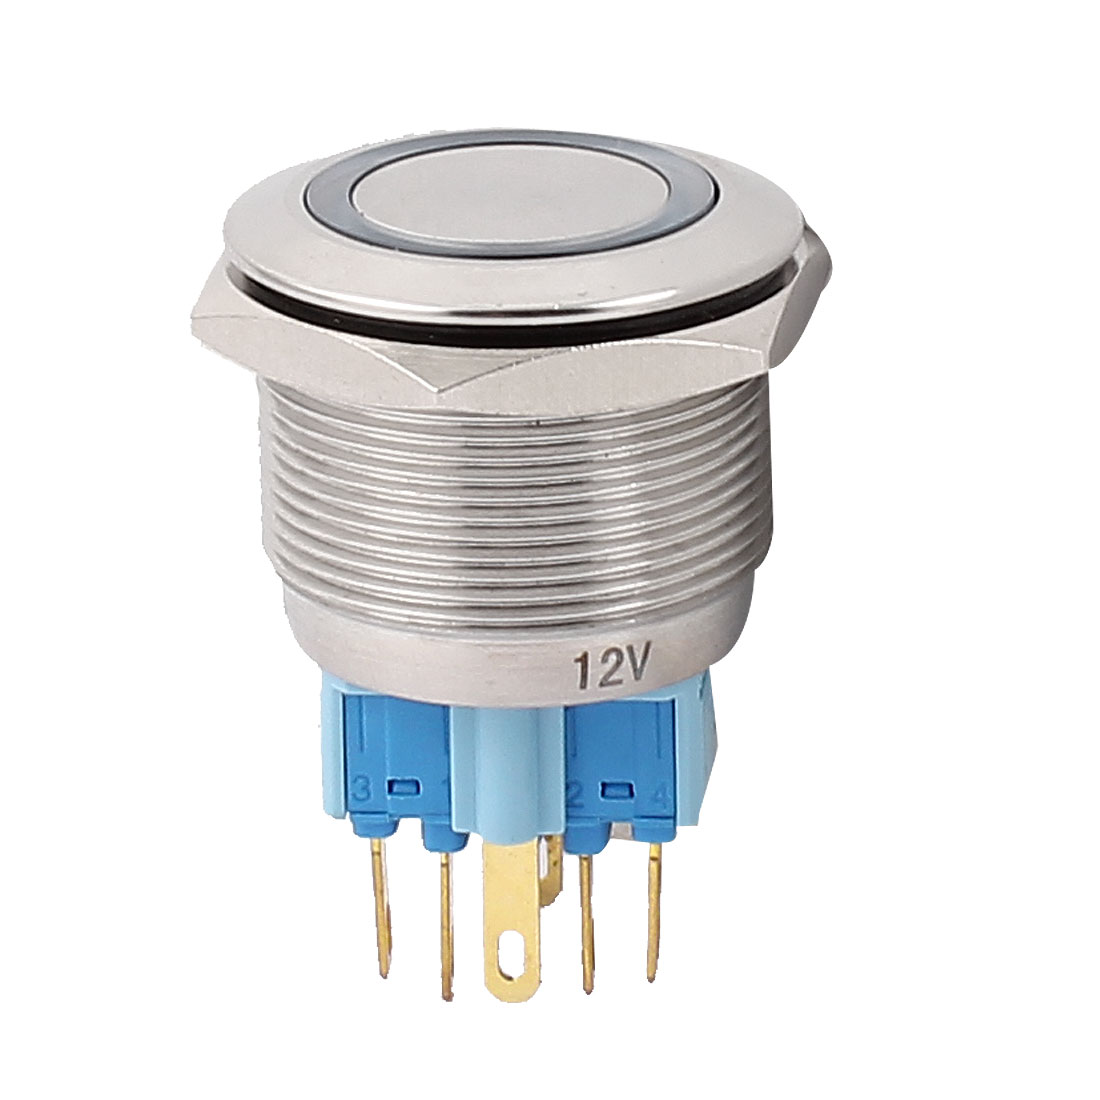 12V 25mm Thread Dia Blue LED Angle Eyes Momentary Metal Pushbutton Switch